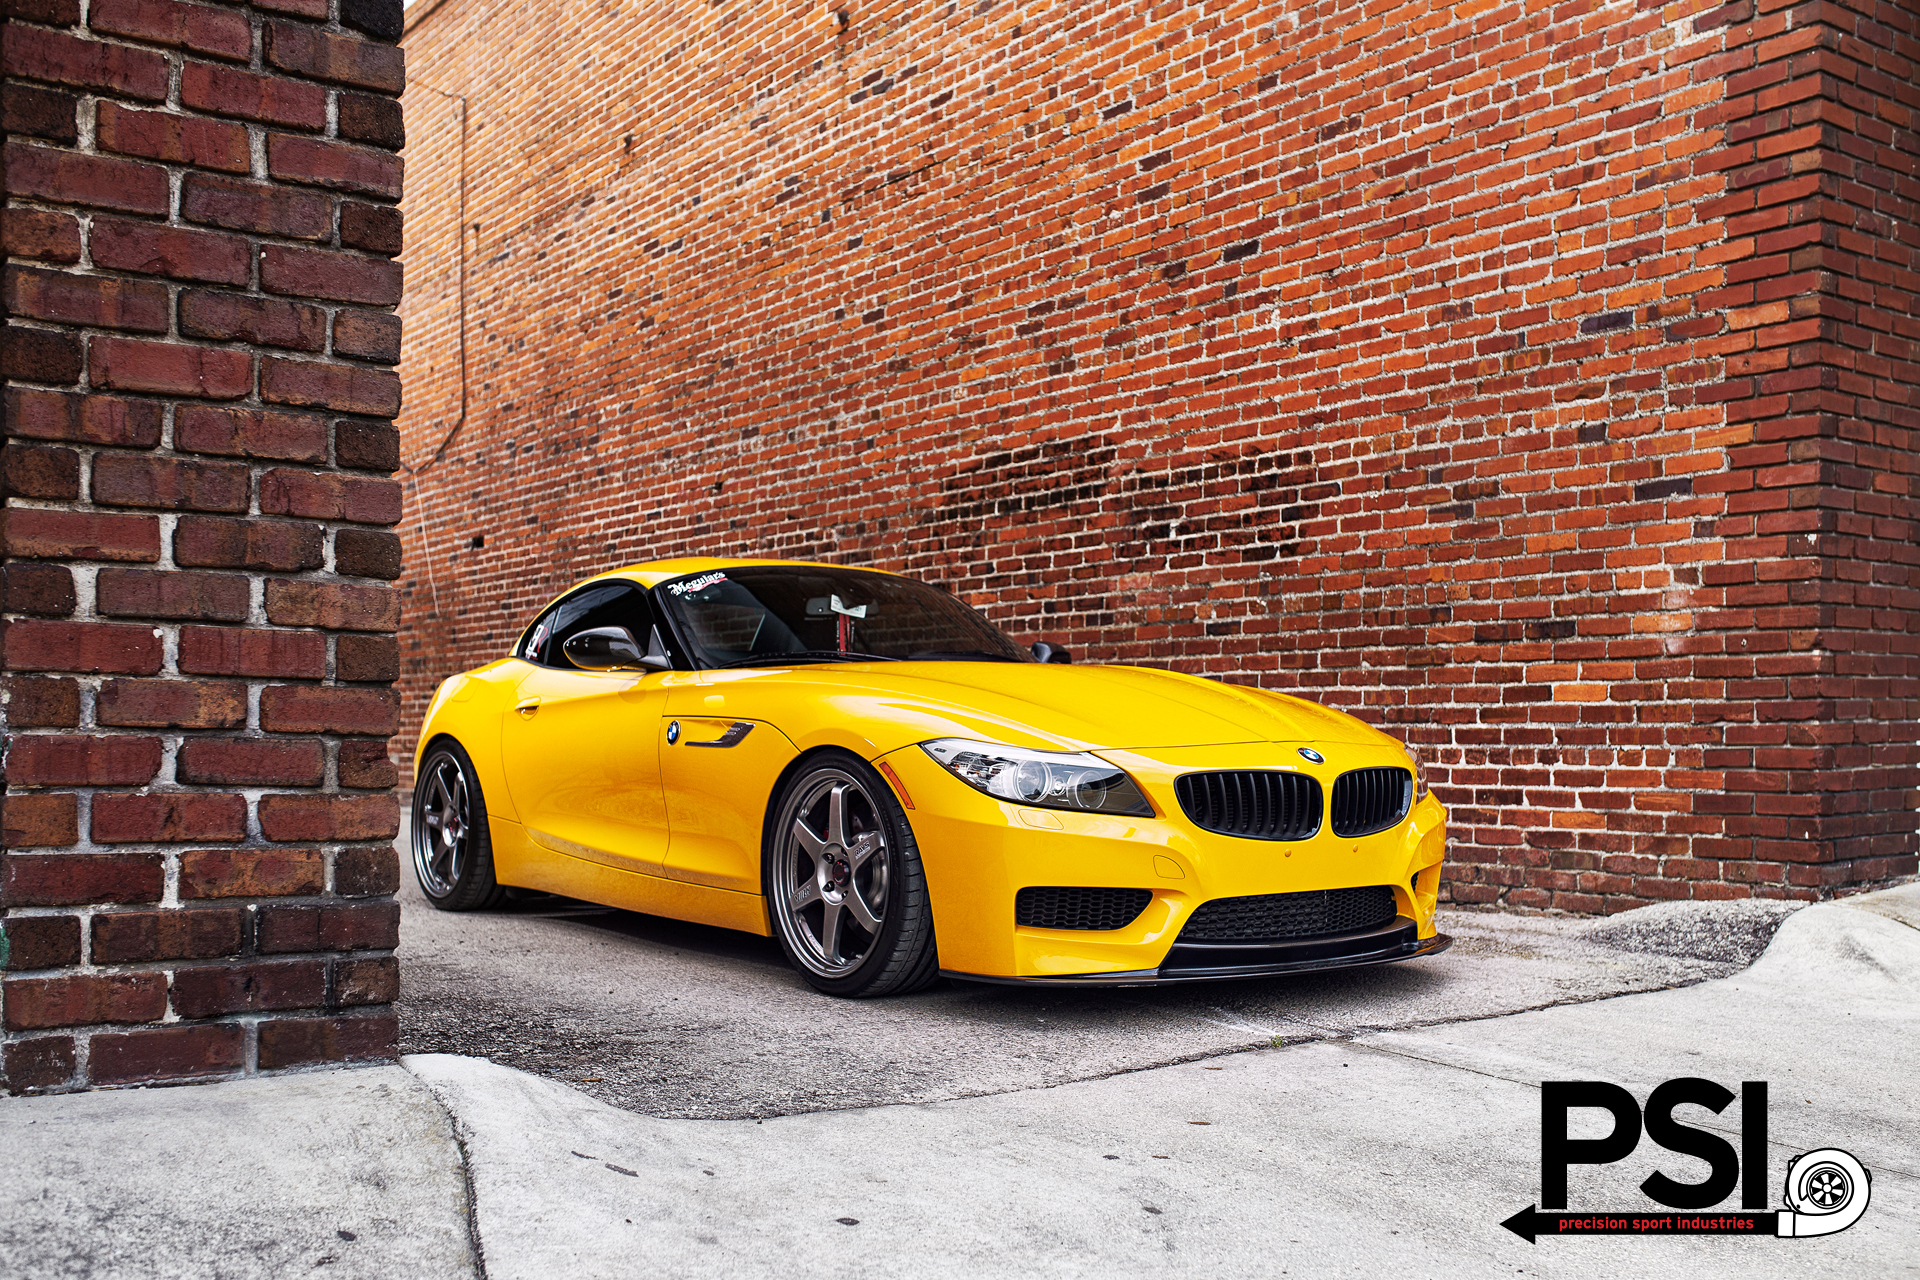 Atacama Yellow BMW E89 Z4 by PSI - autoevolution